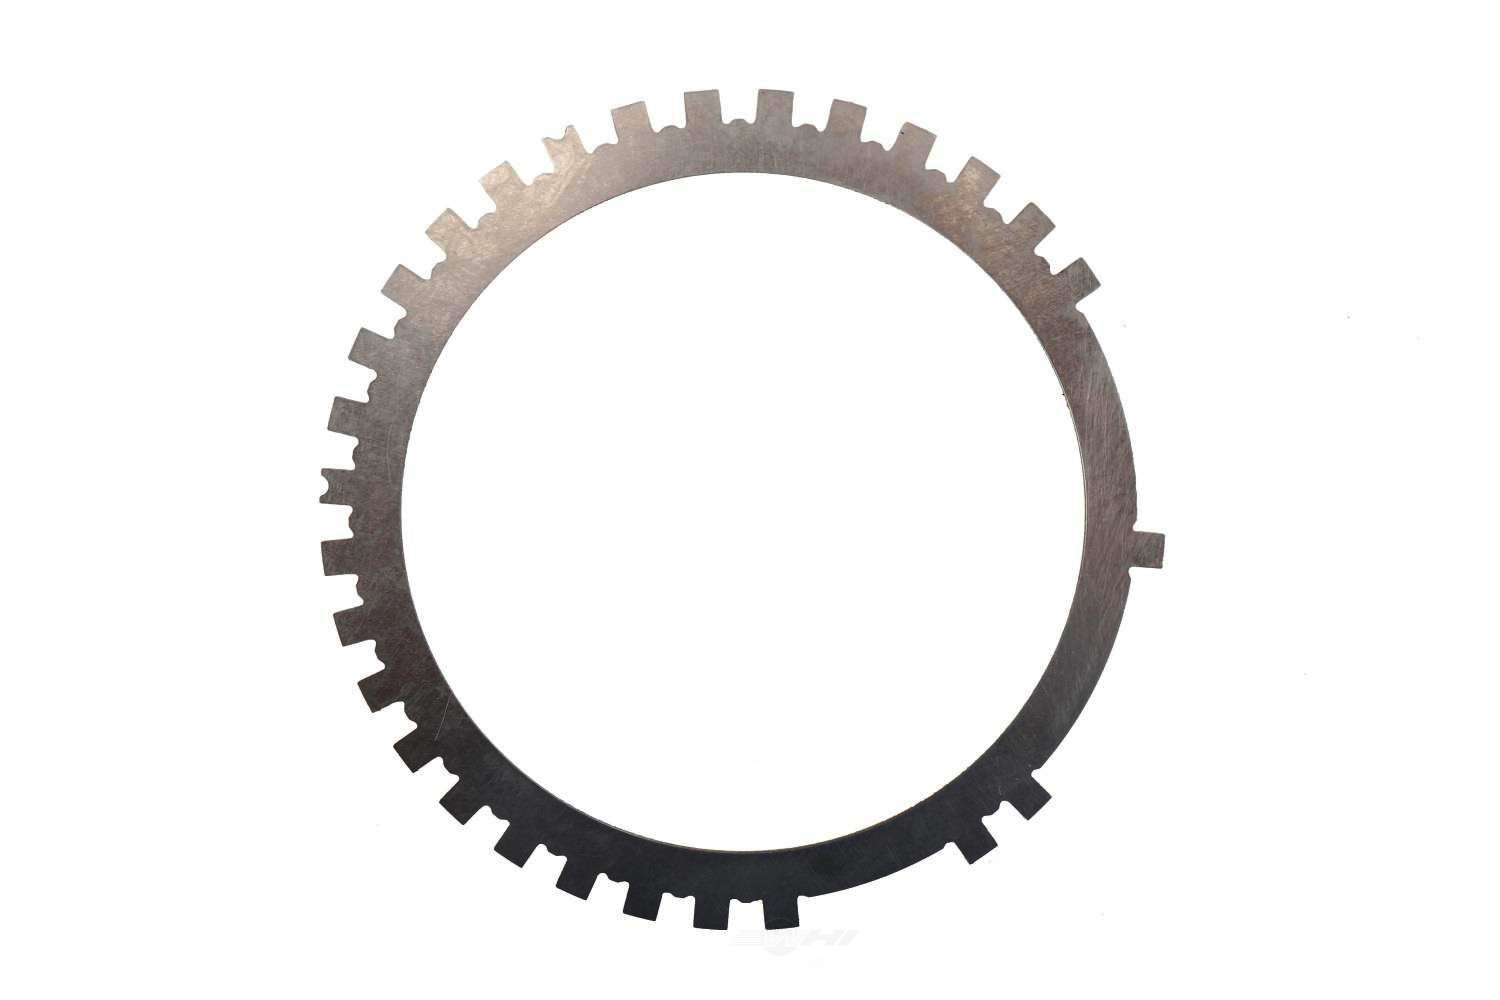 ACDELCO GM ORIGINAL EQUIPMENT - Transmission Clutch Friction Plate - DCB 24277132